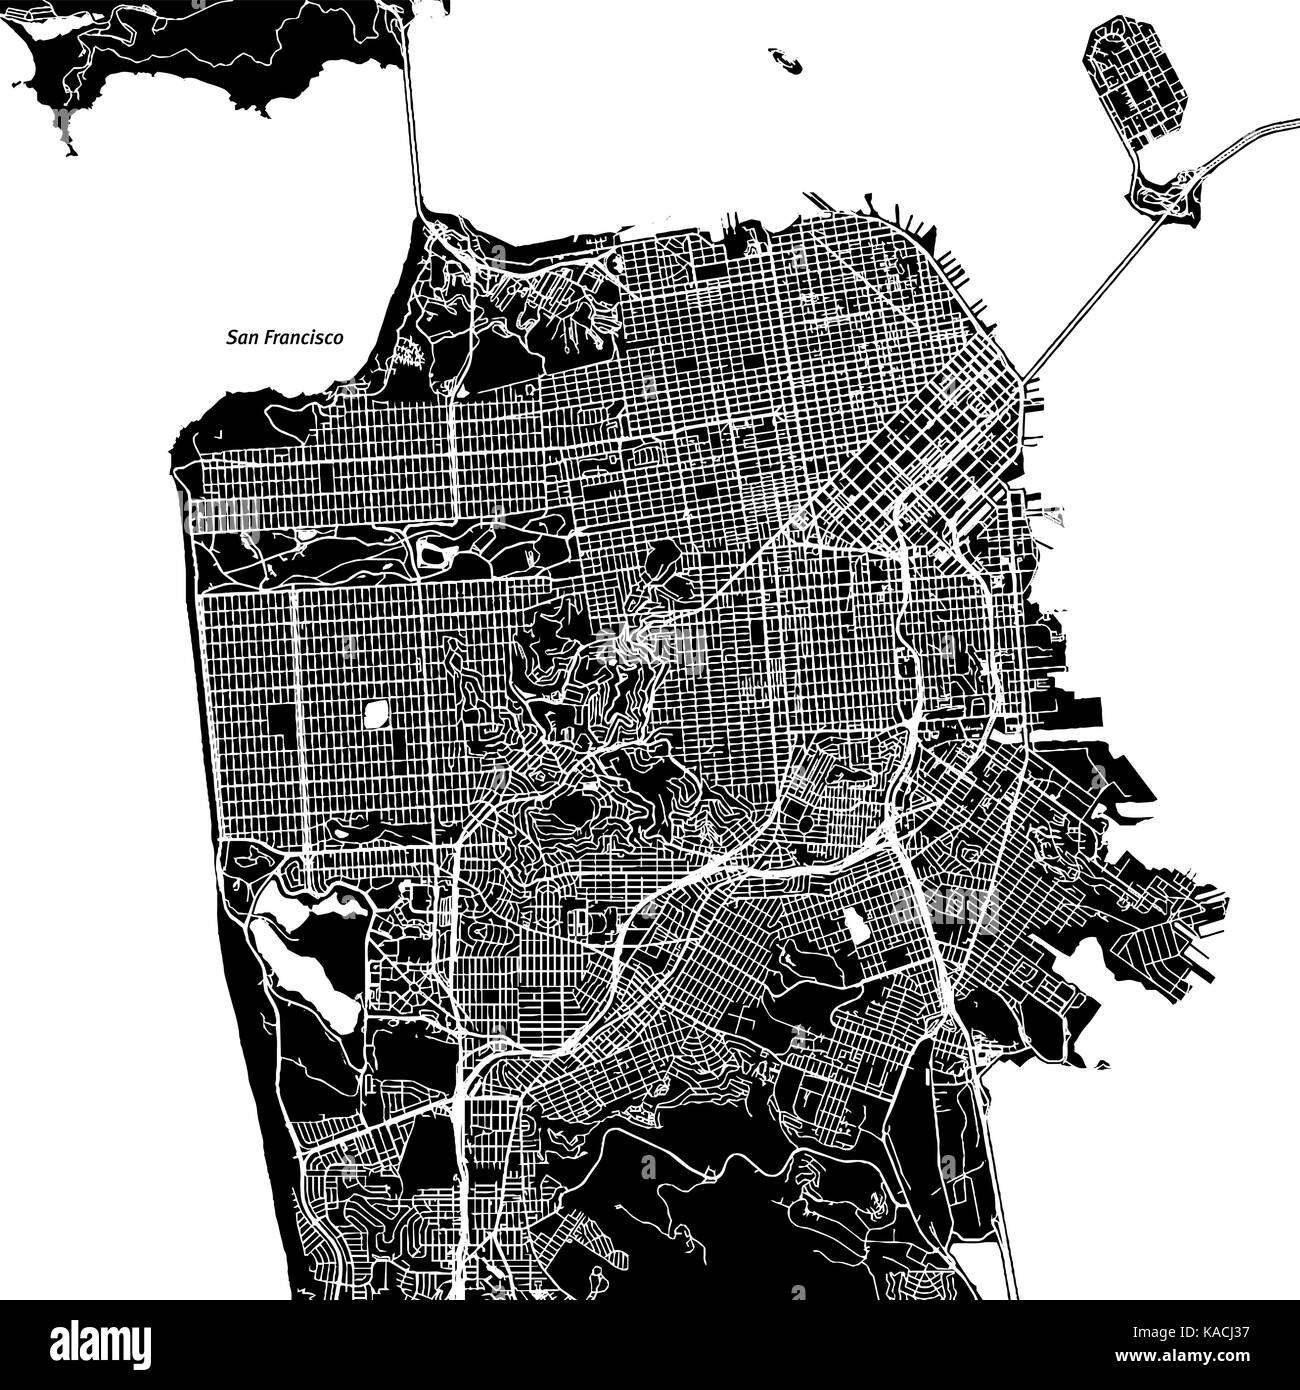 San Francisco, California. Downtown vector map. City name on ... on san francisco street cleaning map, san francisco street map 1960, san francisco city map online, san francisco sacramento street map, san francisco tourist street map, new york tourist map printable, san francisco tourist map printable, san francisco street parking map, san francisco street view,